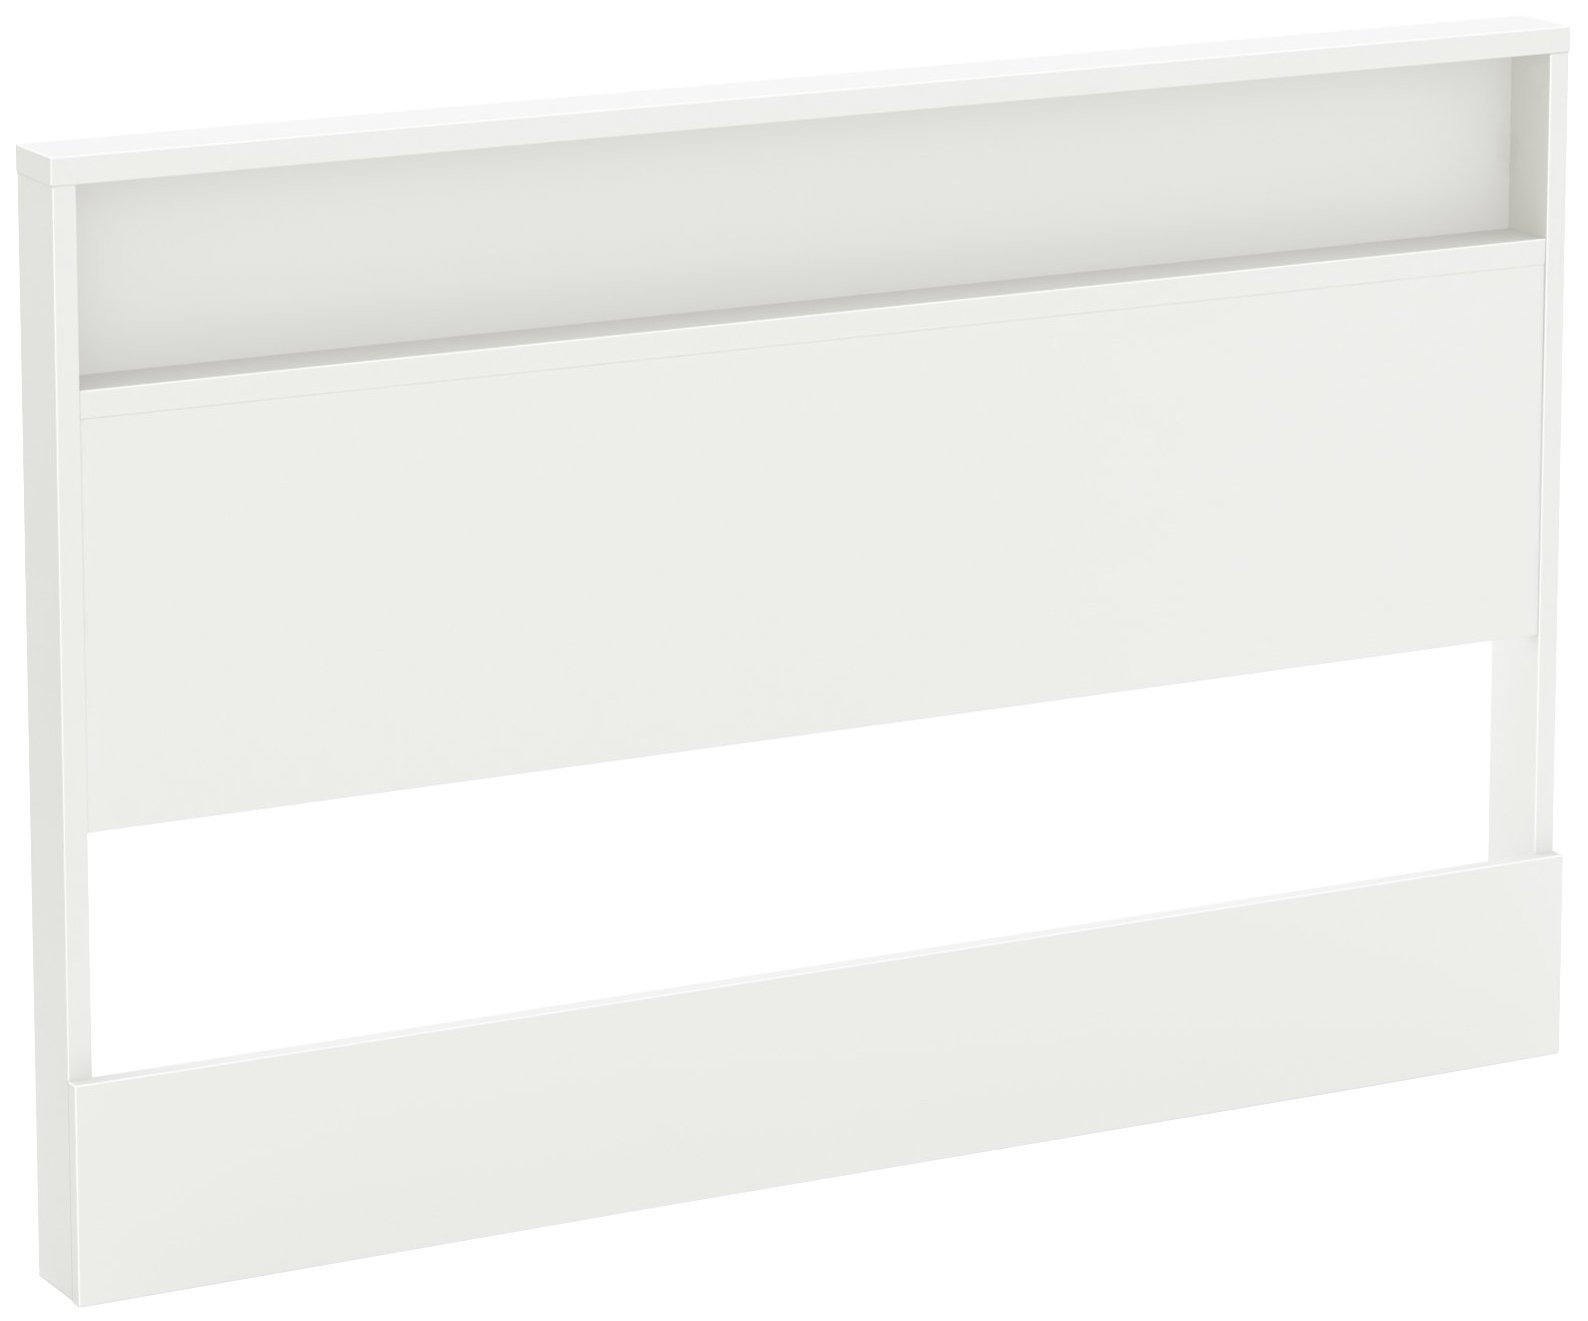 South Shore Holland Headboard with Shelf, Full/Queen 54/60-Inch, Pure White